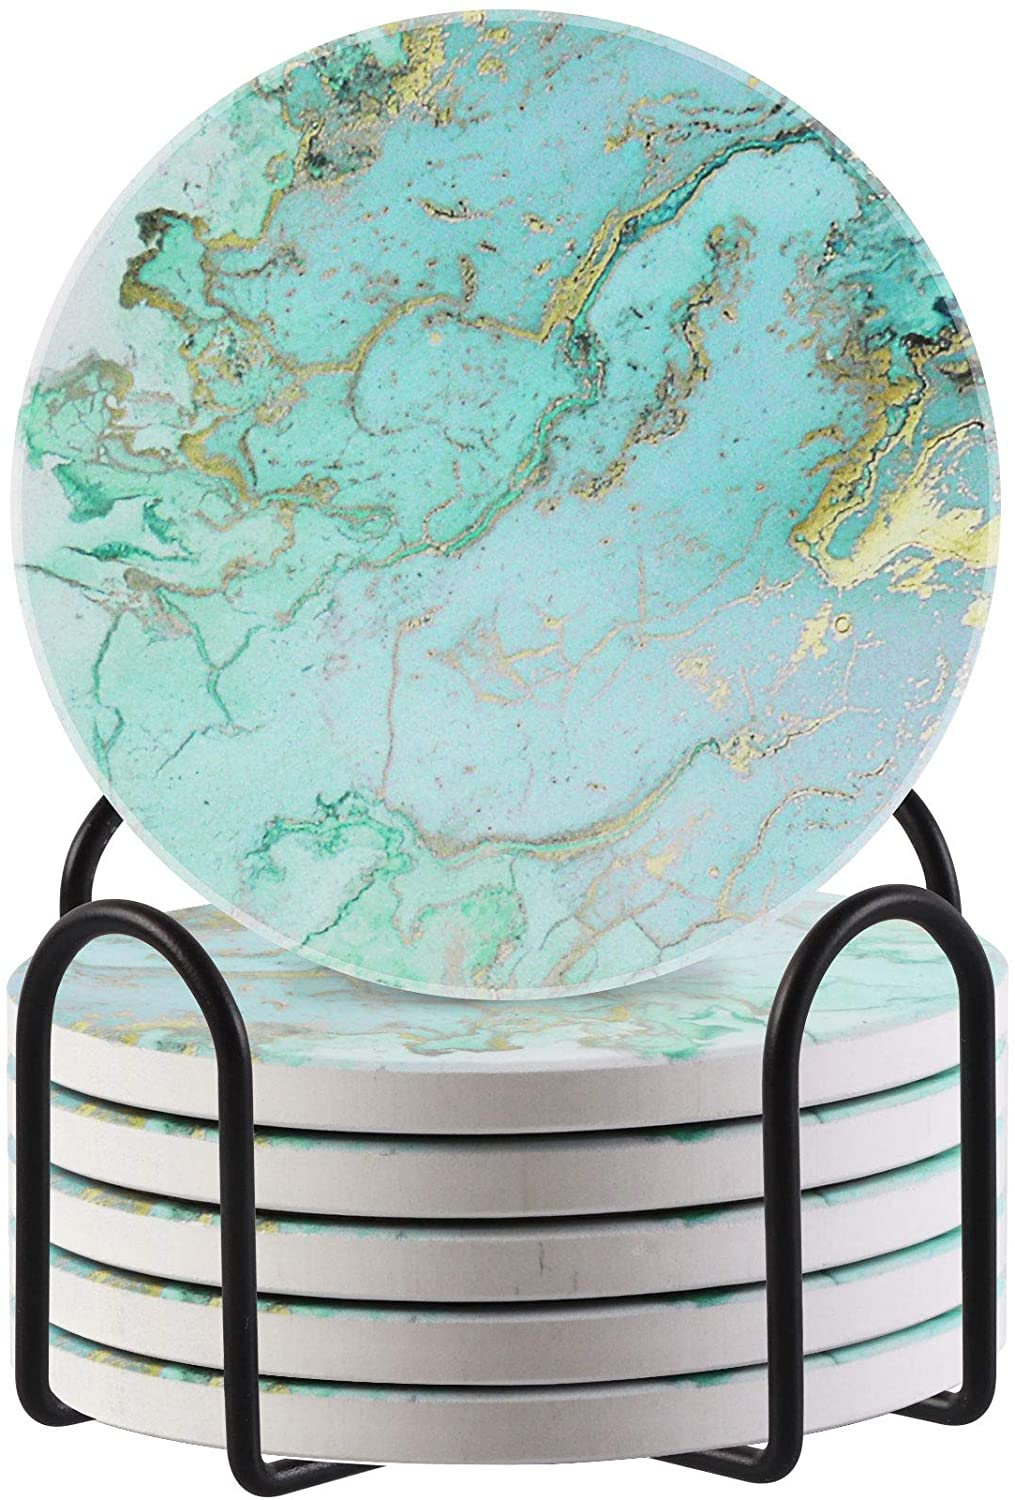 Lahome Marble Pattern Coasters for Drinks, Round Absorbent Ceramic Stone Design Coasters Set with Holder for Mugs Cups Tabletop Protection Room Decor (Light Blue, 6)